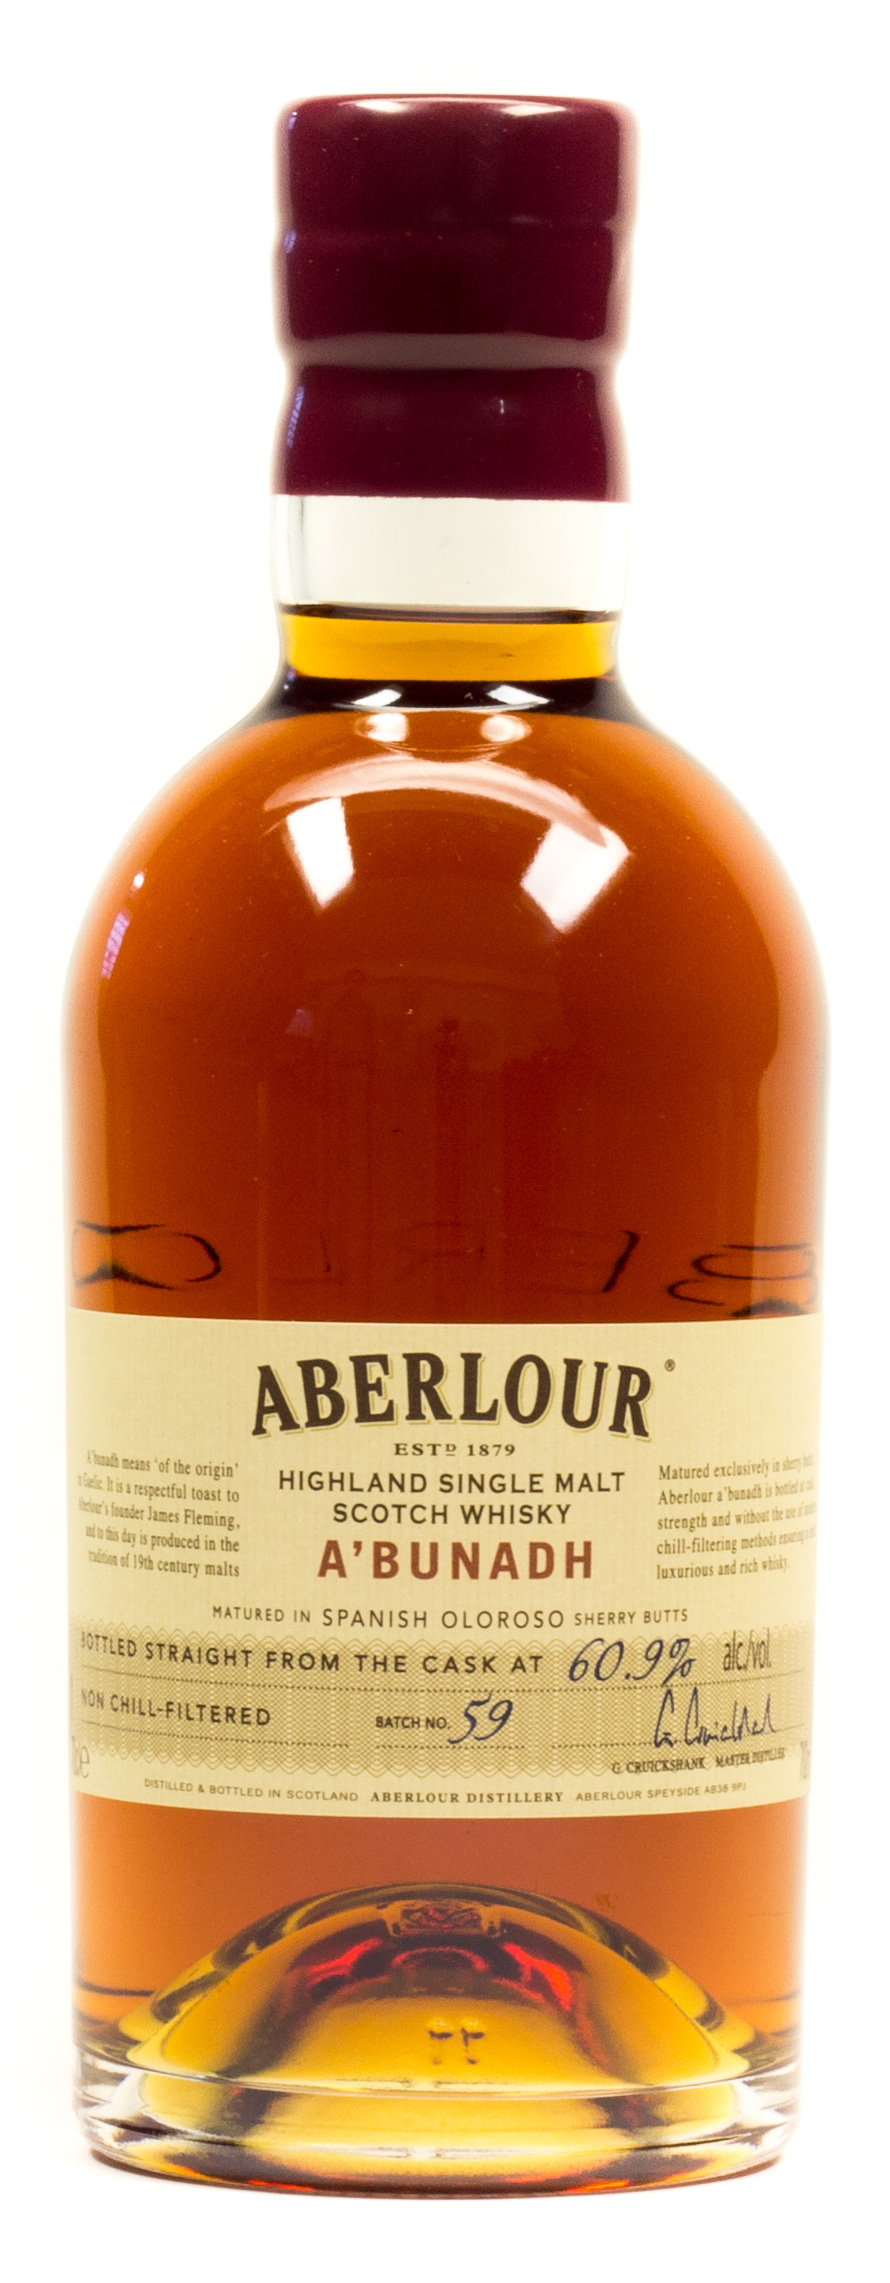 Aberlour Highland Single Malt Scotch Whisky A'Bunadh 0,7 l